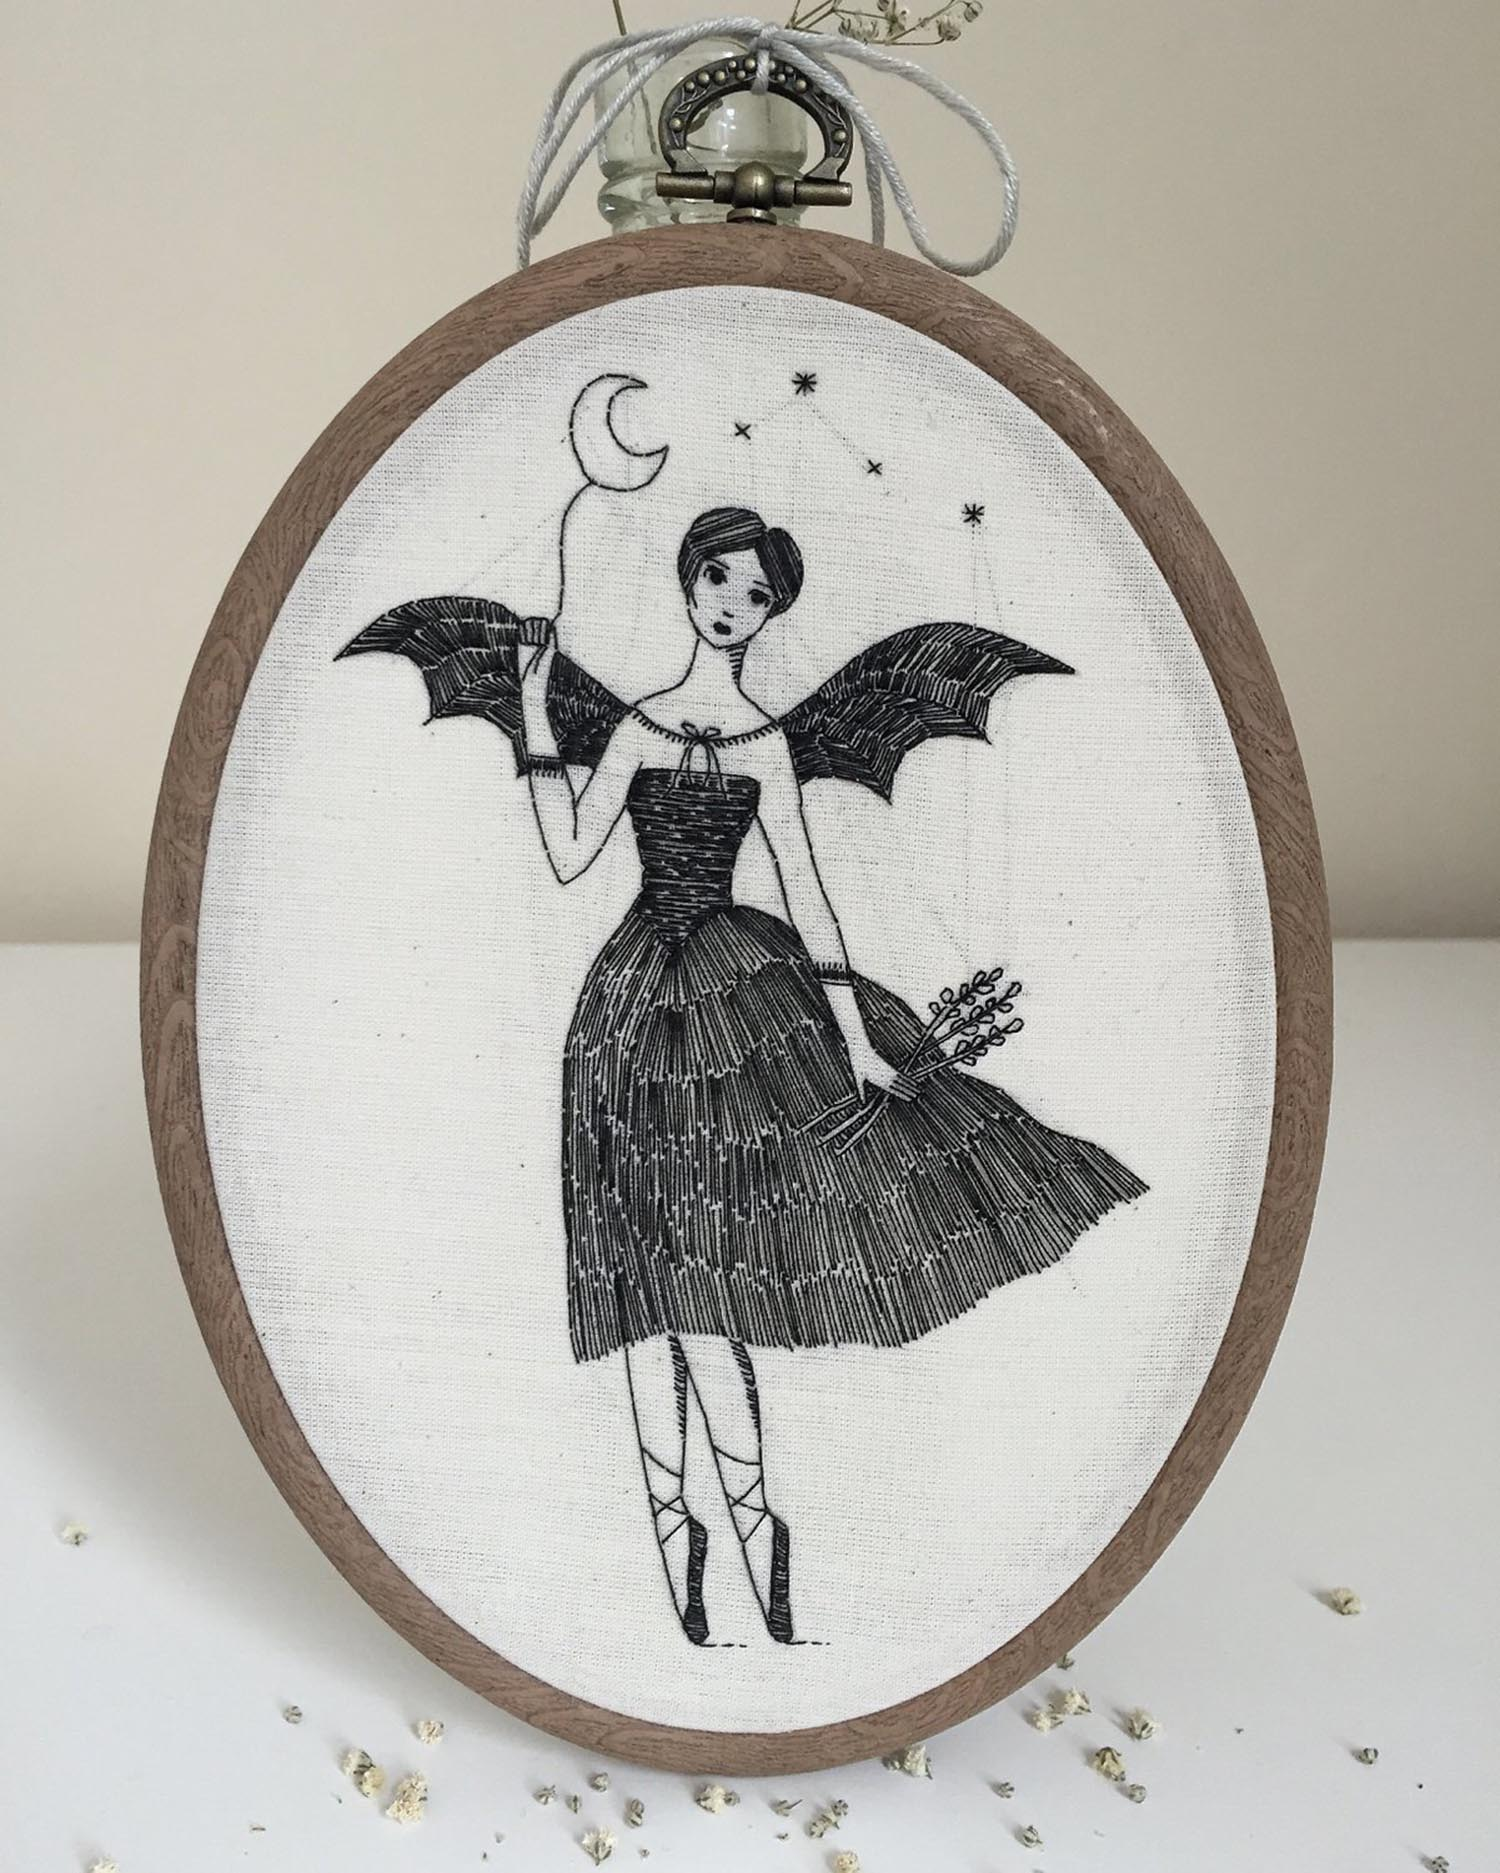 Embroidery of a woman bat